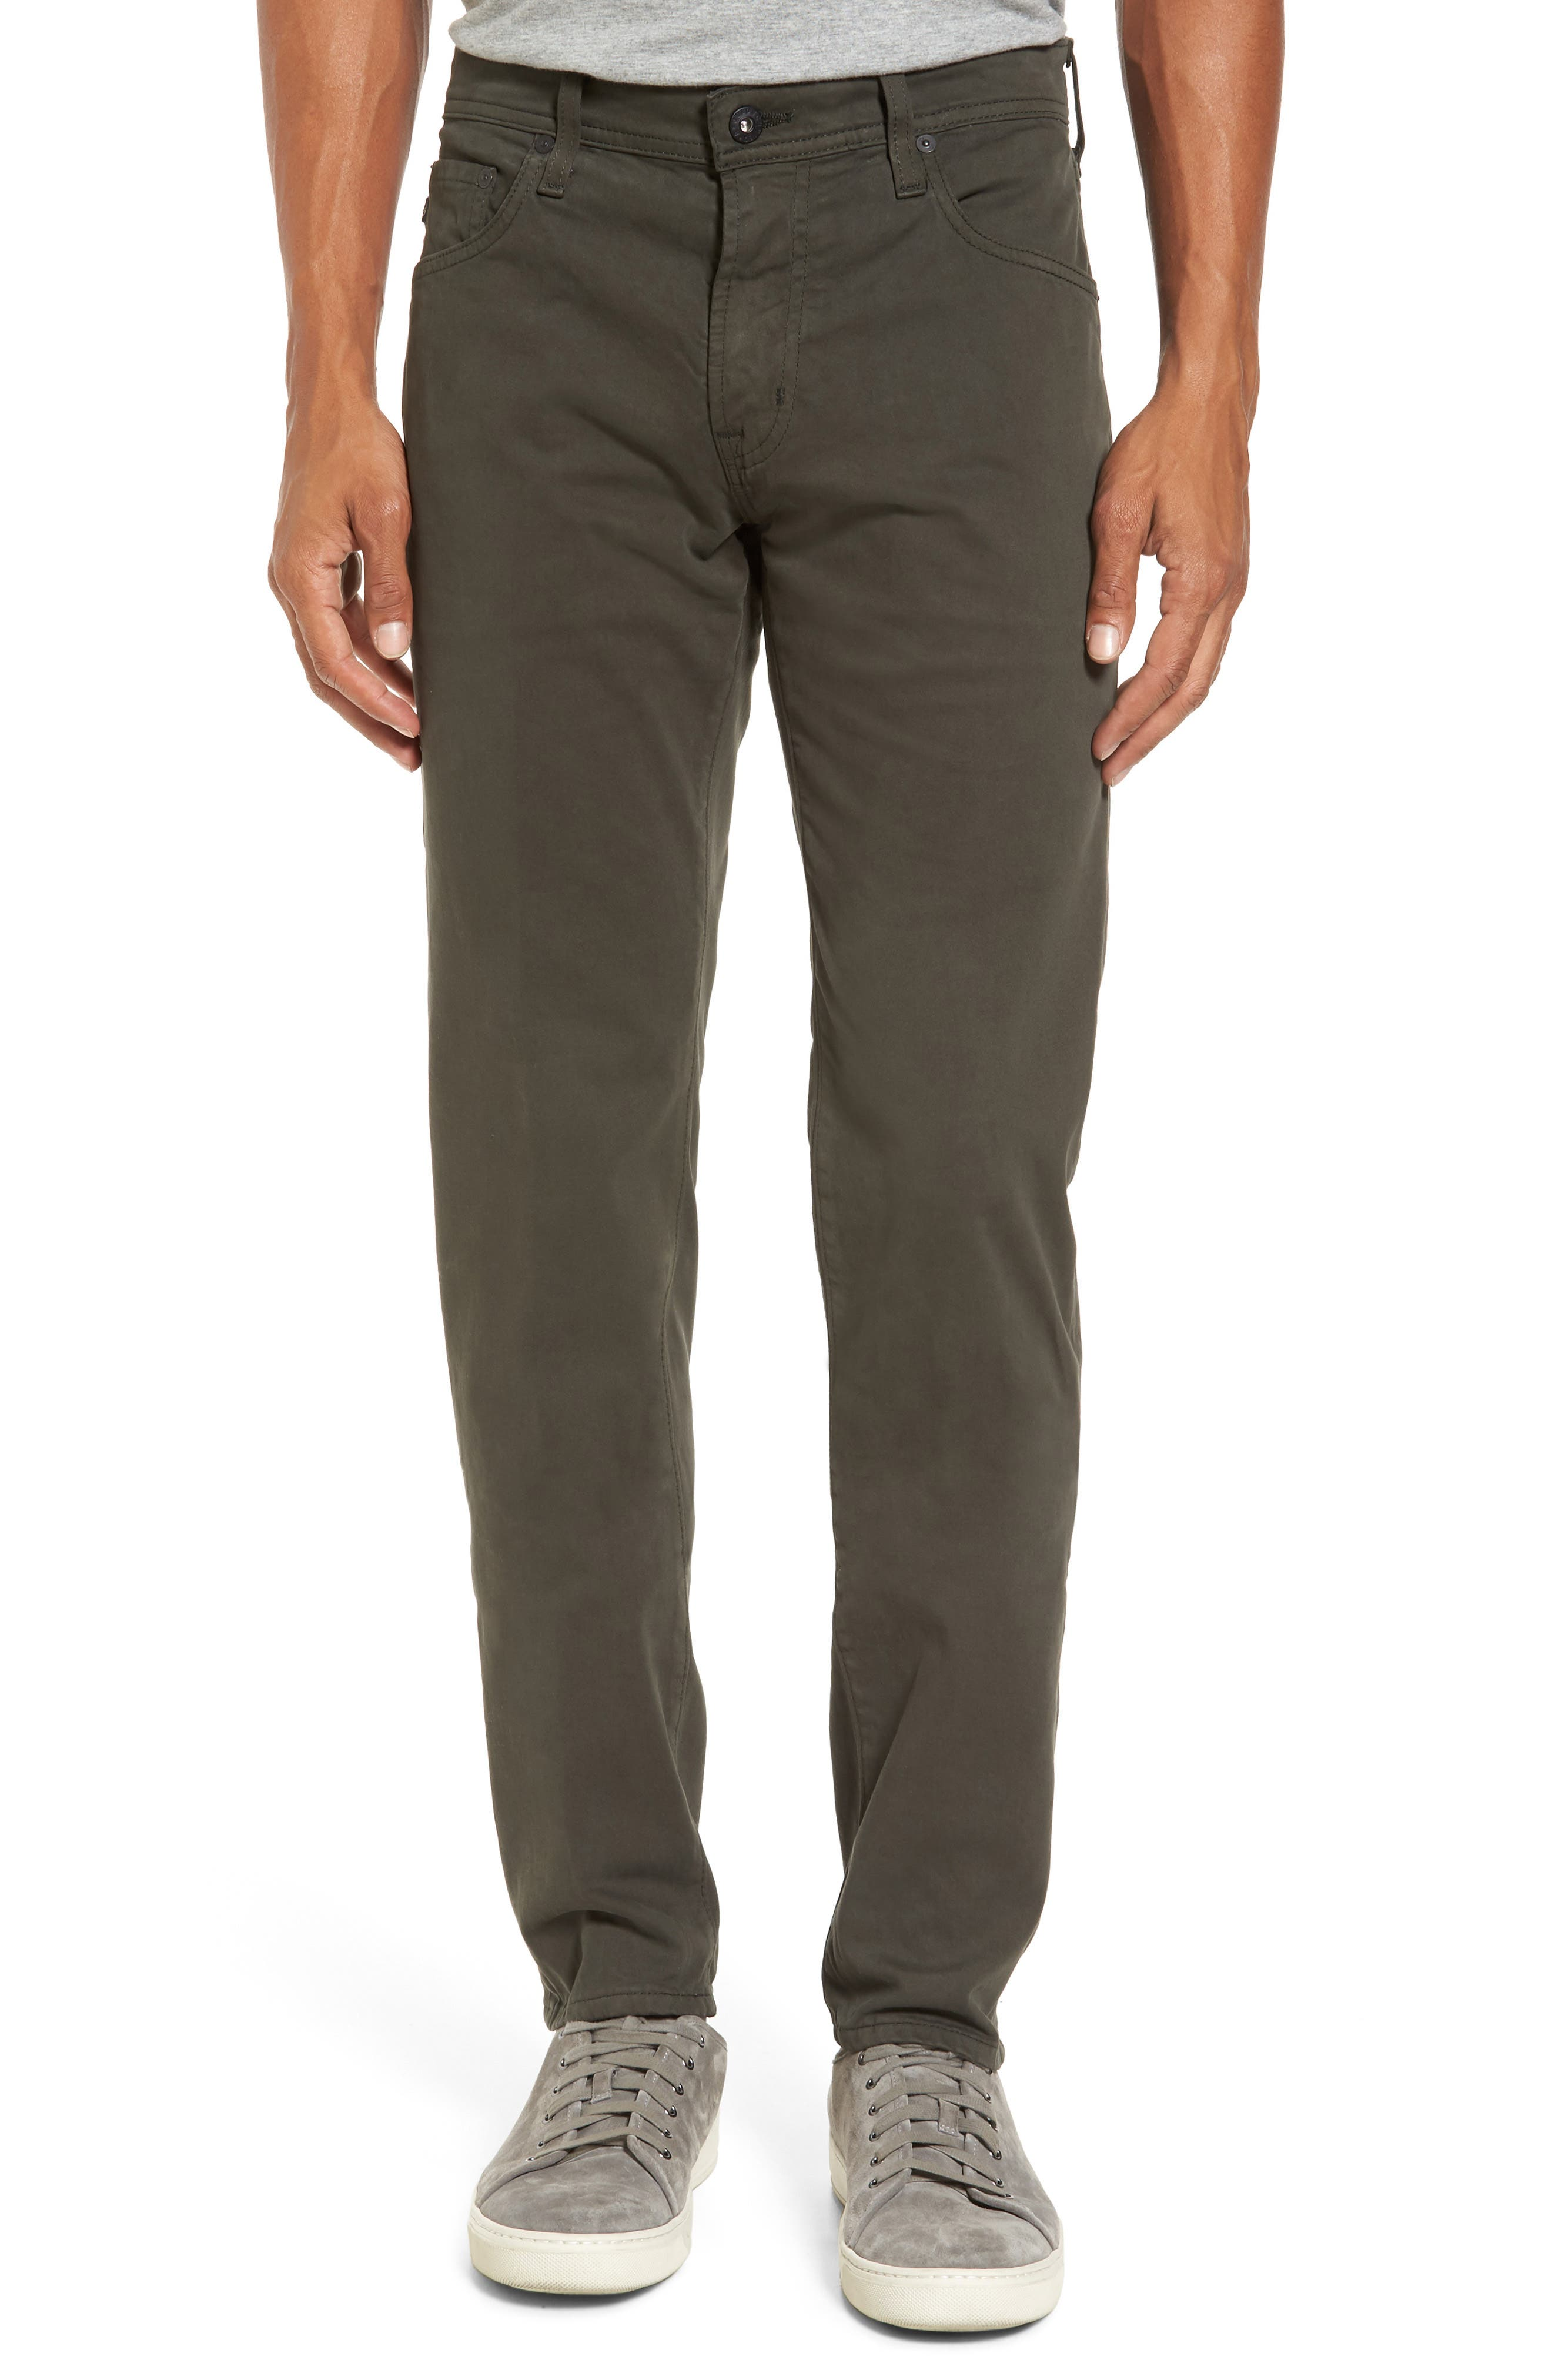 Tellis SUD Modern Slim Stretch Twill Pants,                         Main,                         color, Green Forest